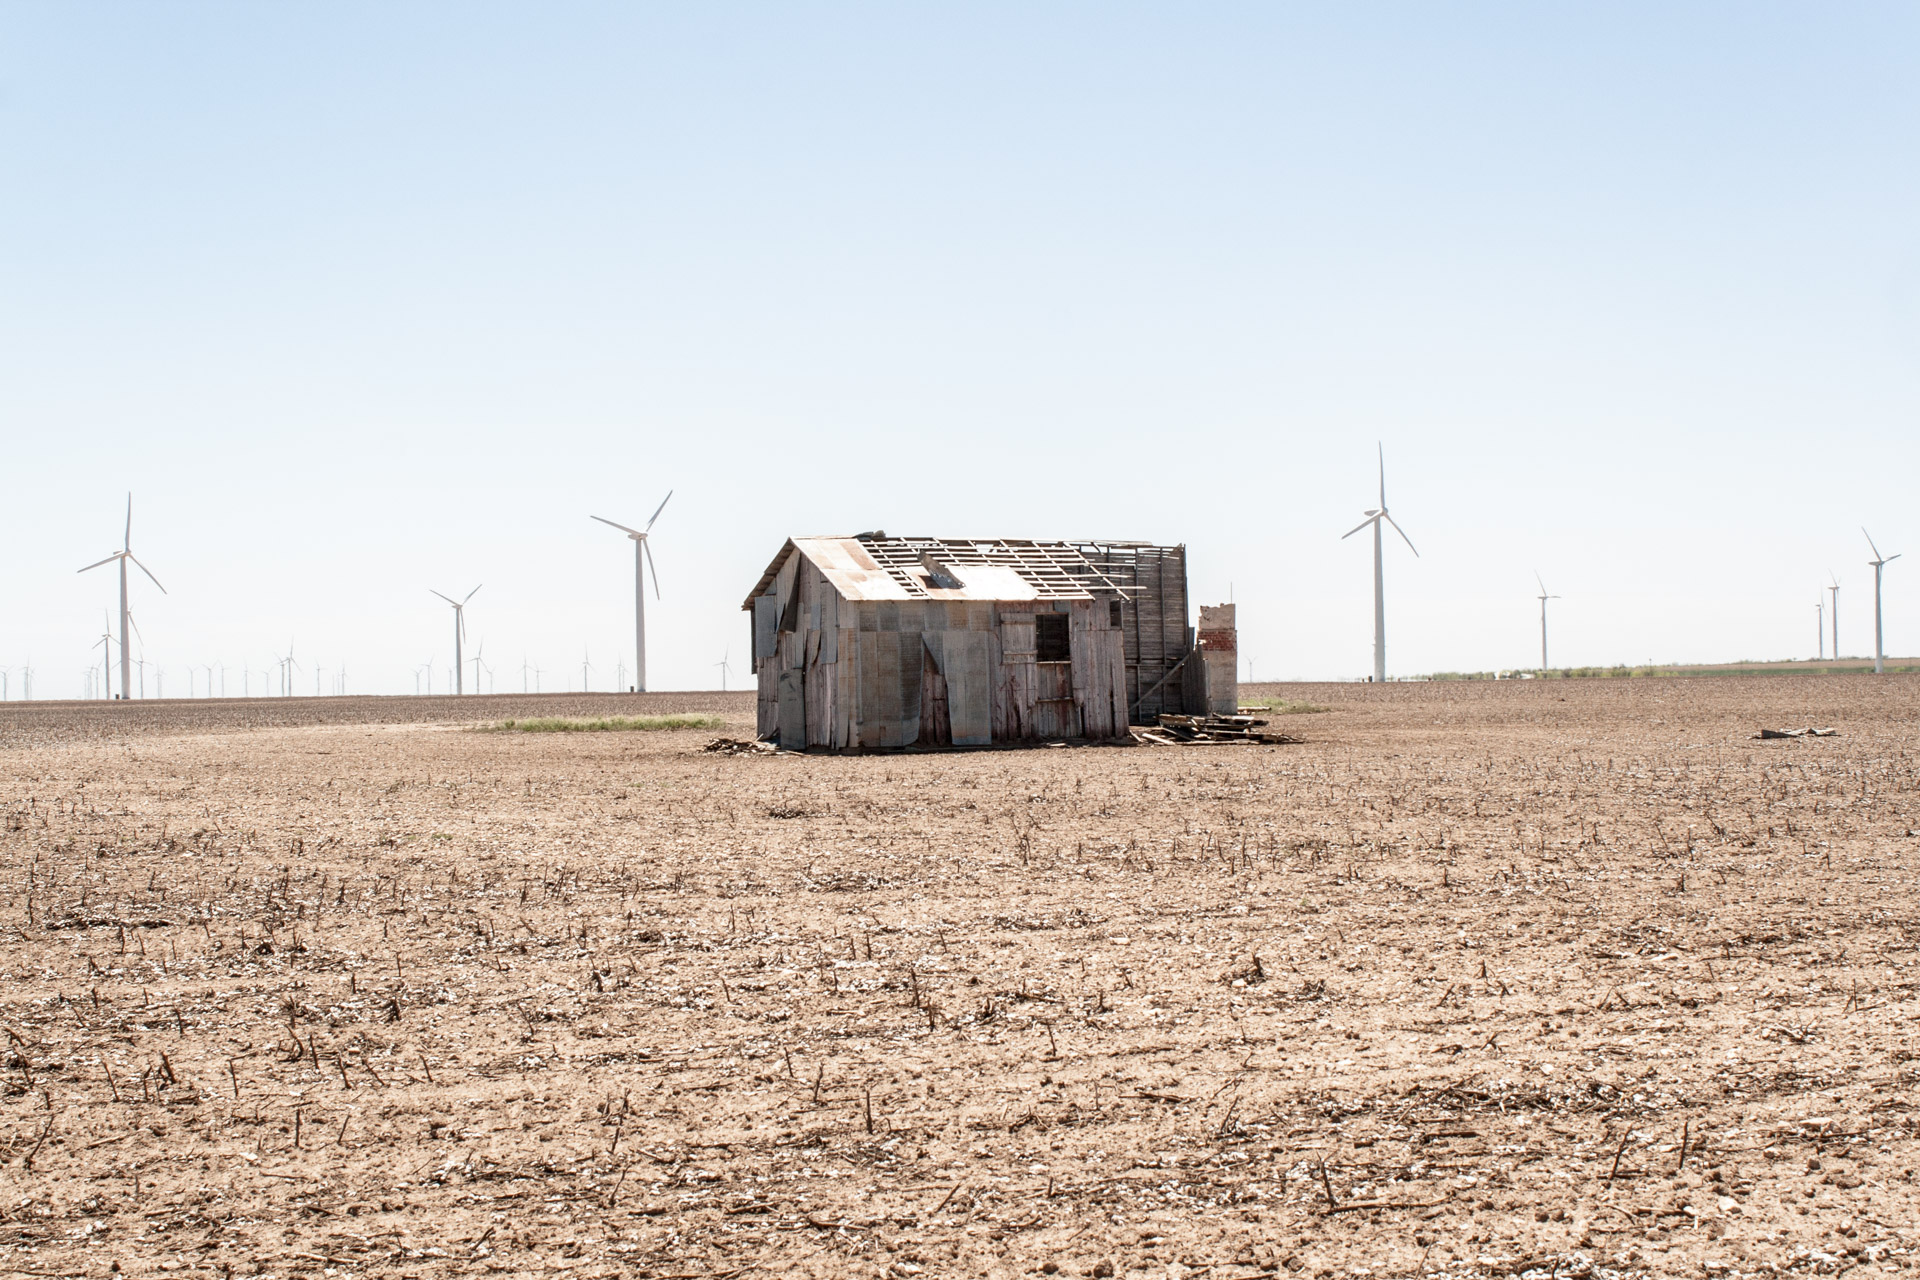 Wind Turbine Community Tiny Barn (angle left far)